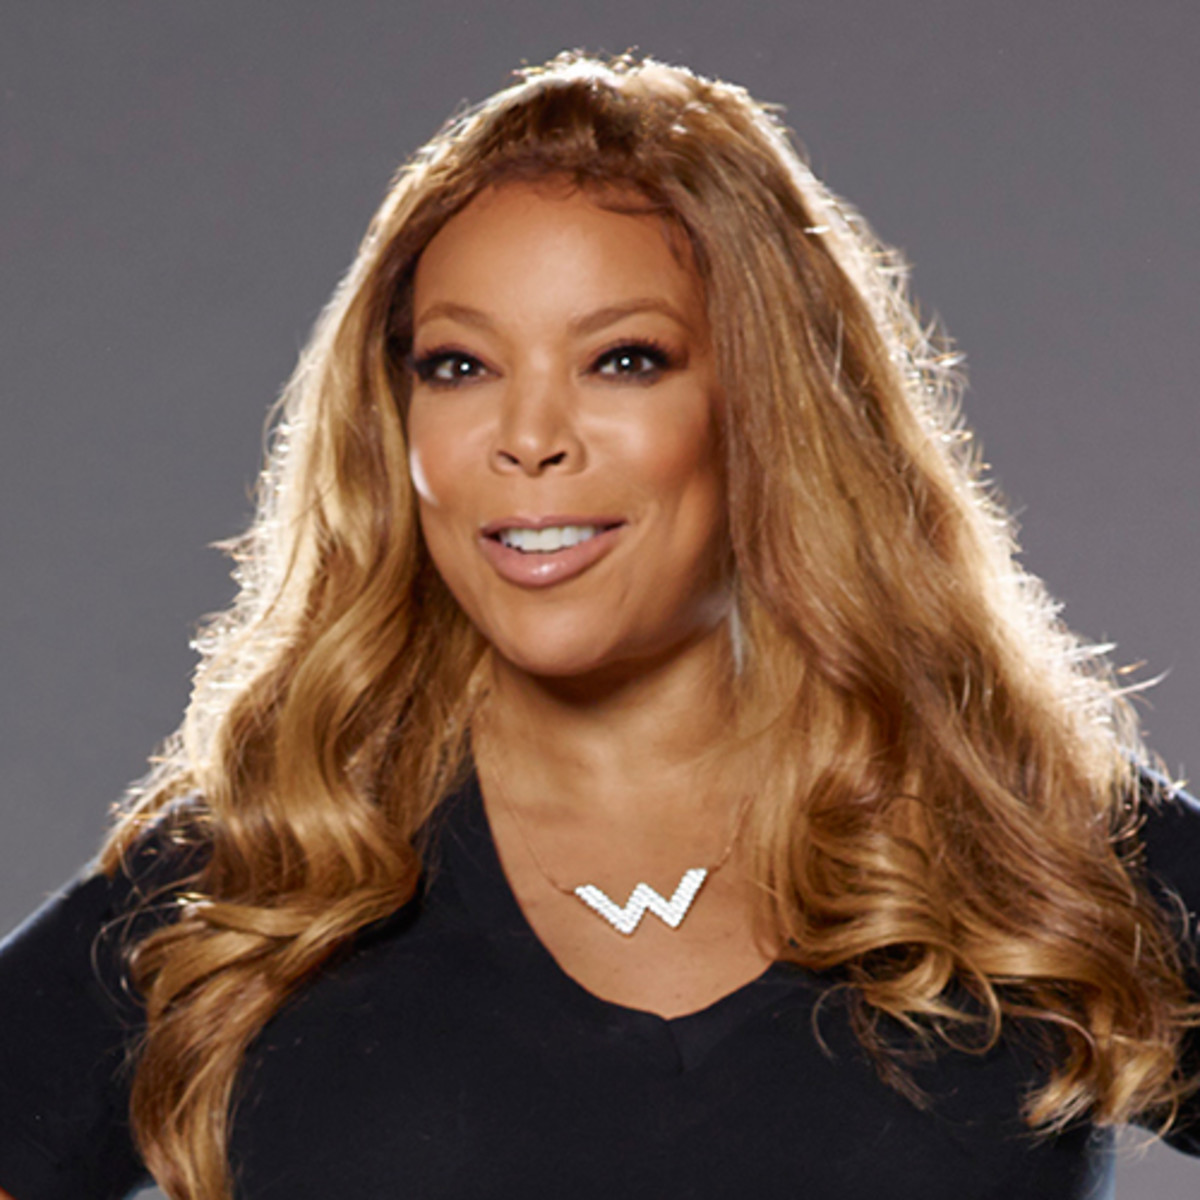 wendy-williams-really-wanted-full-control-while-working-on-her-biopic-and-documentary-heres-why